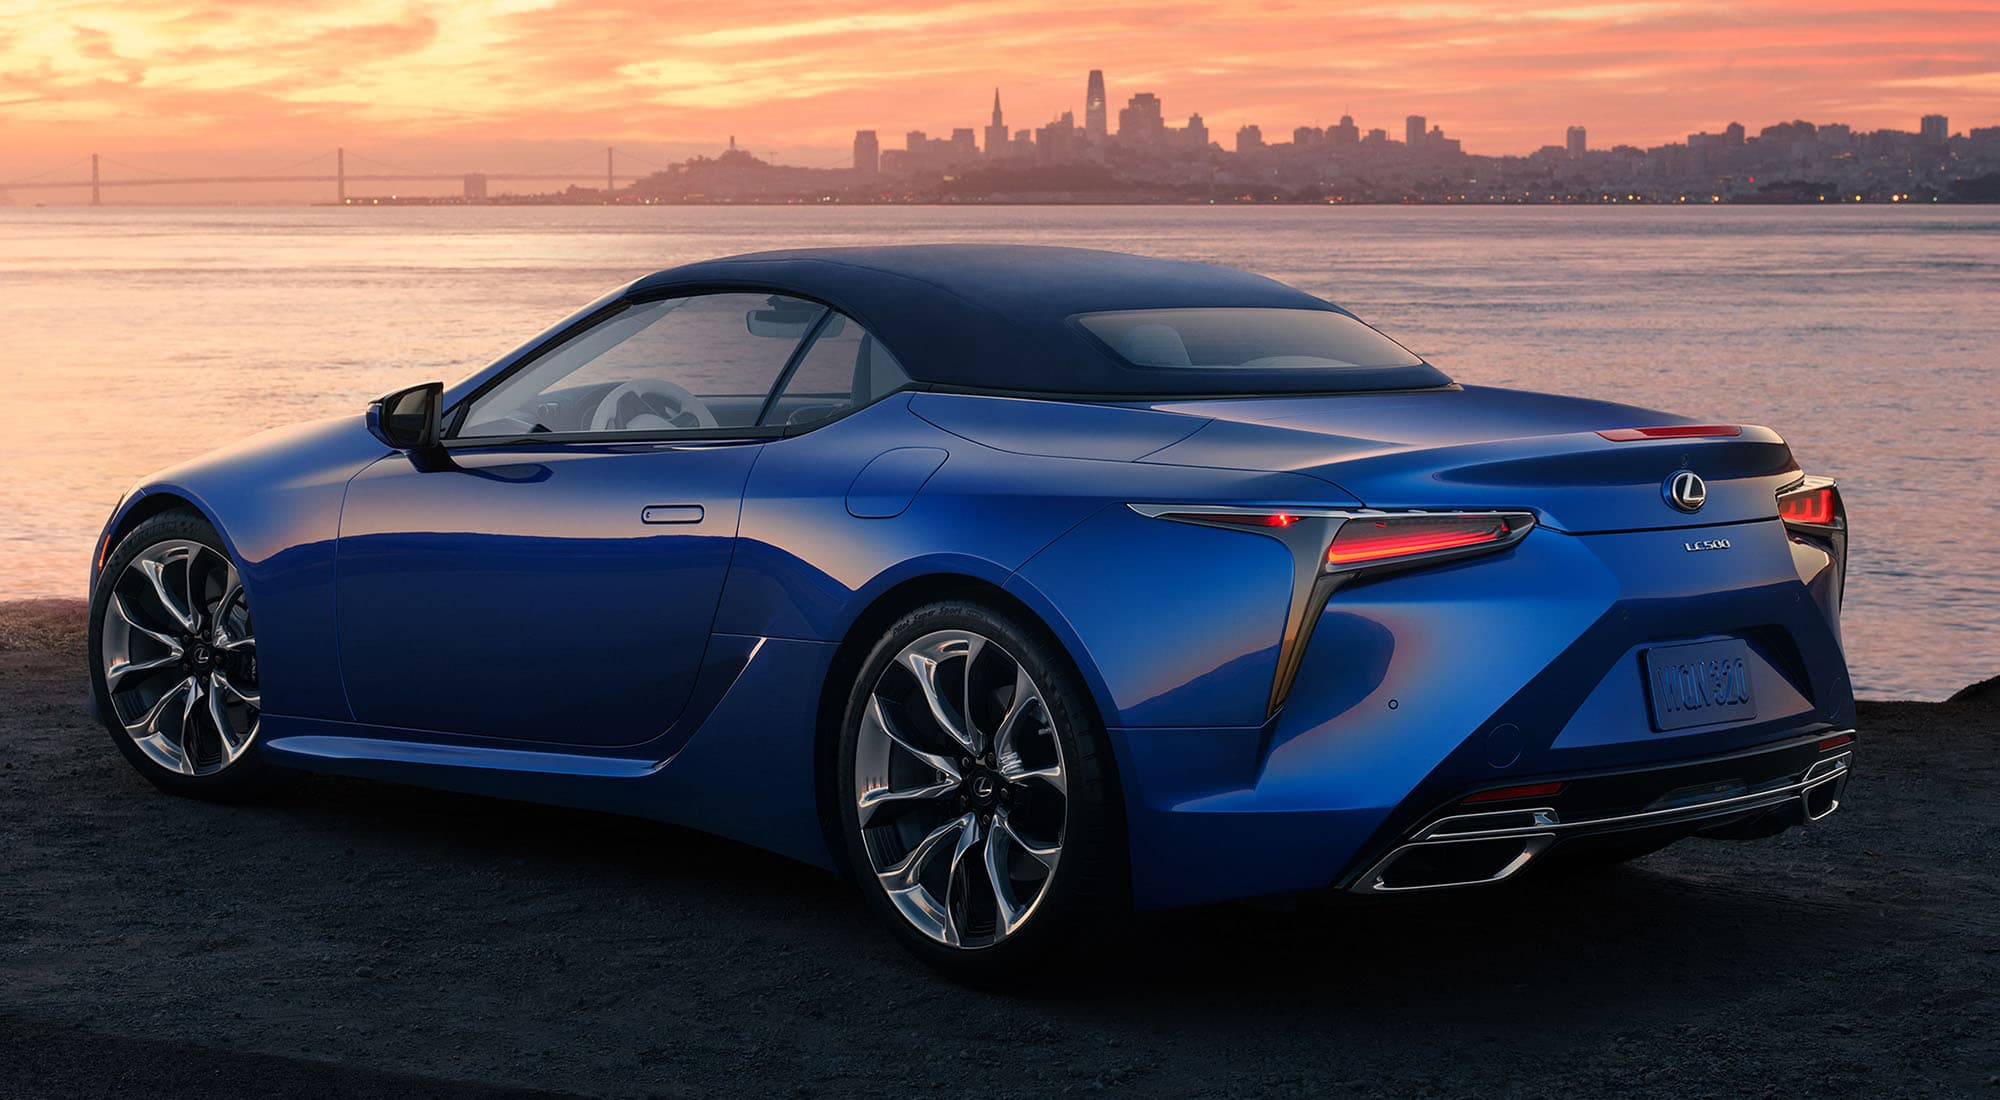 2020 Lexus LC 500 Convertible Rear